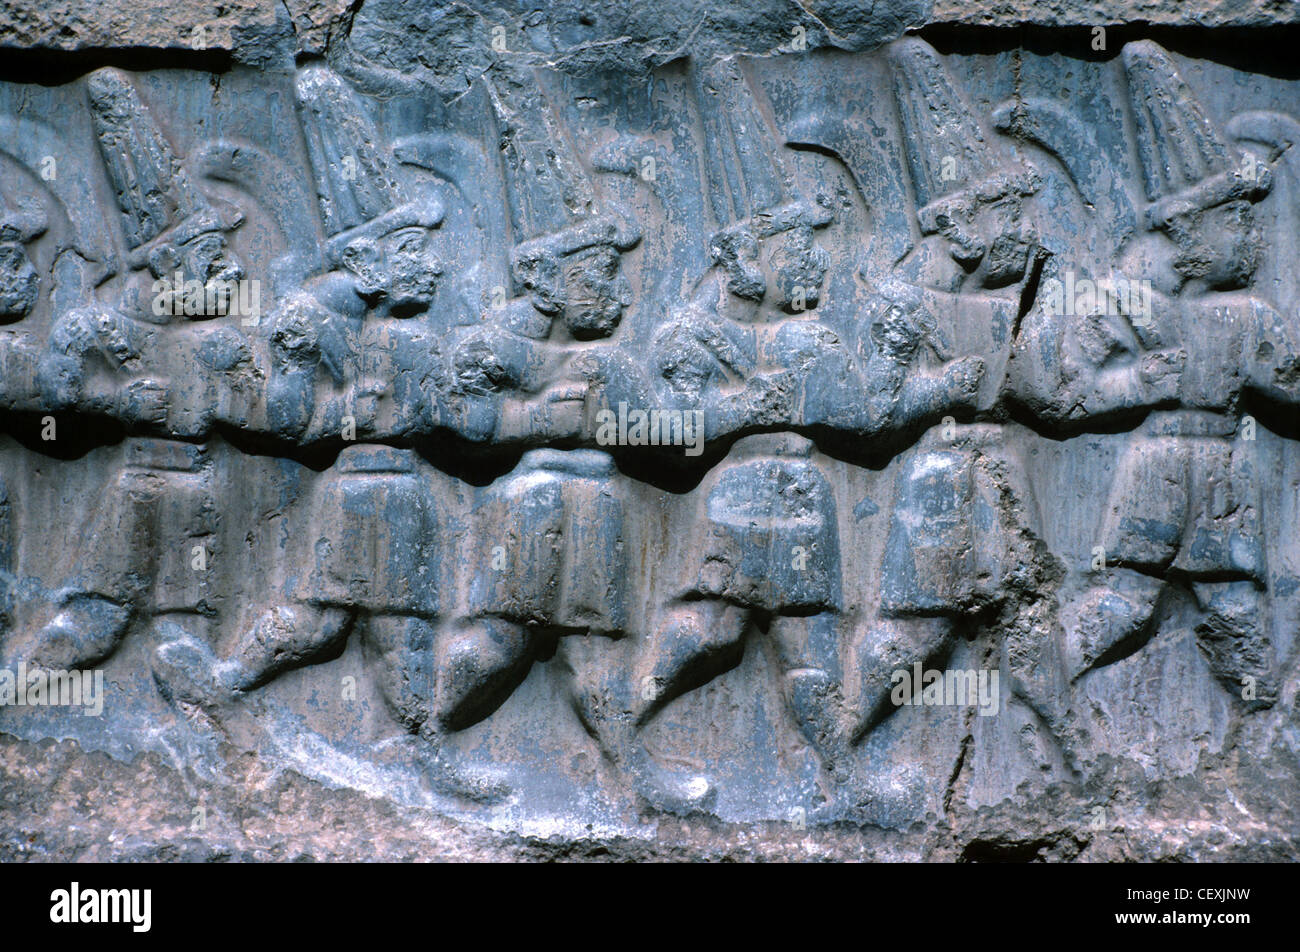 Bas-Reliefs or Rock Carvings of Procession of Hittites or Hittite Soldiers or Gods, Hattusa Bogazkale, Turkey - Stock Image